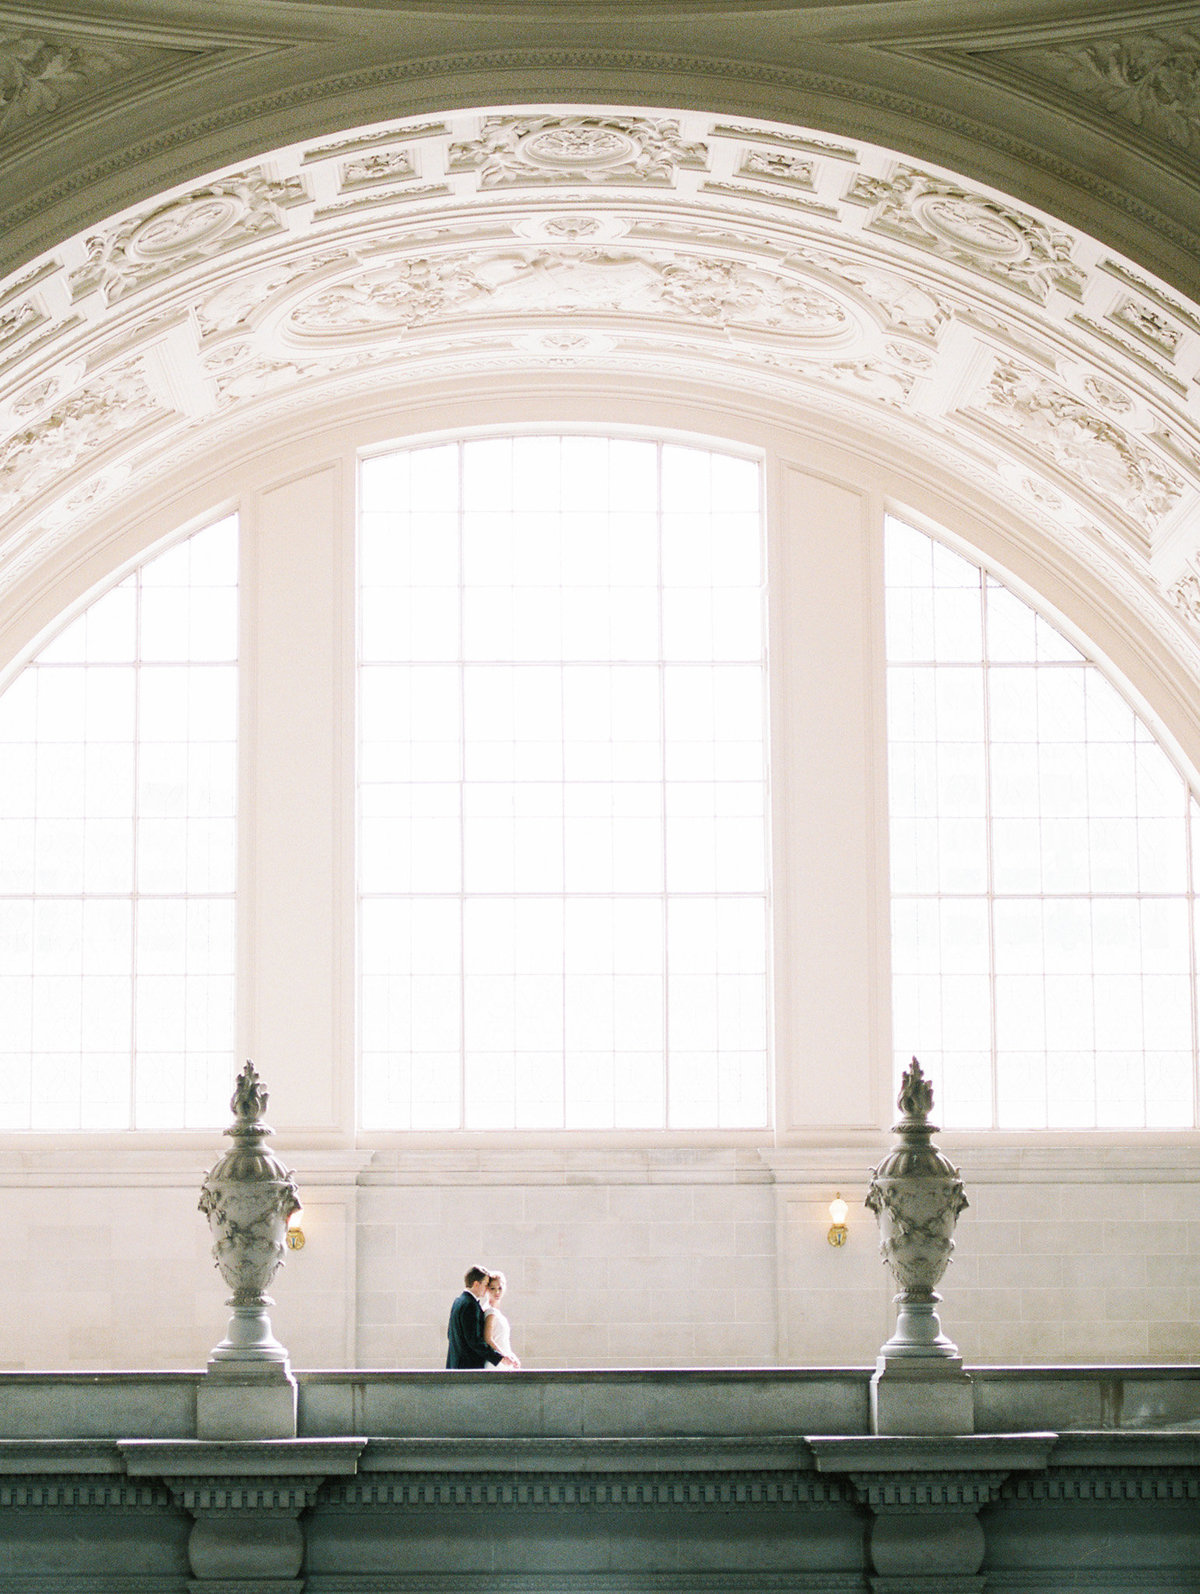 SanFranciscoCityHallWeddingPhotographer_SanFranciscoCityHallWedding_2019-Andrew_and_Ada_Photography-576